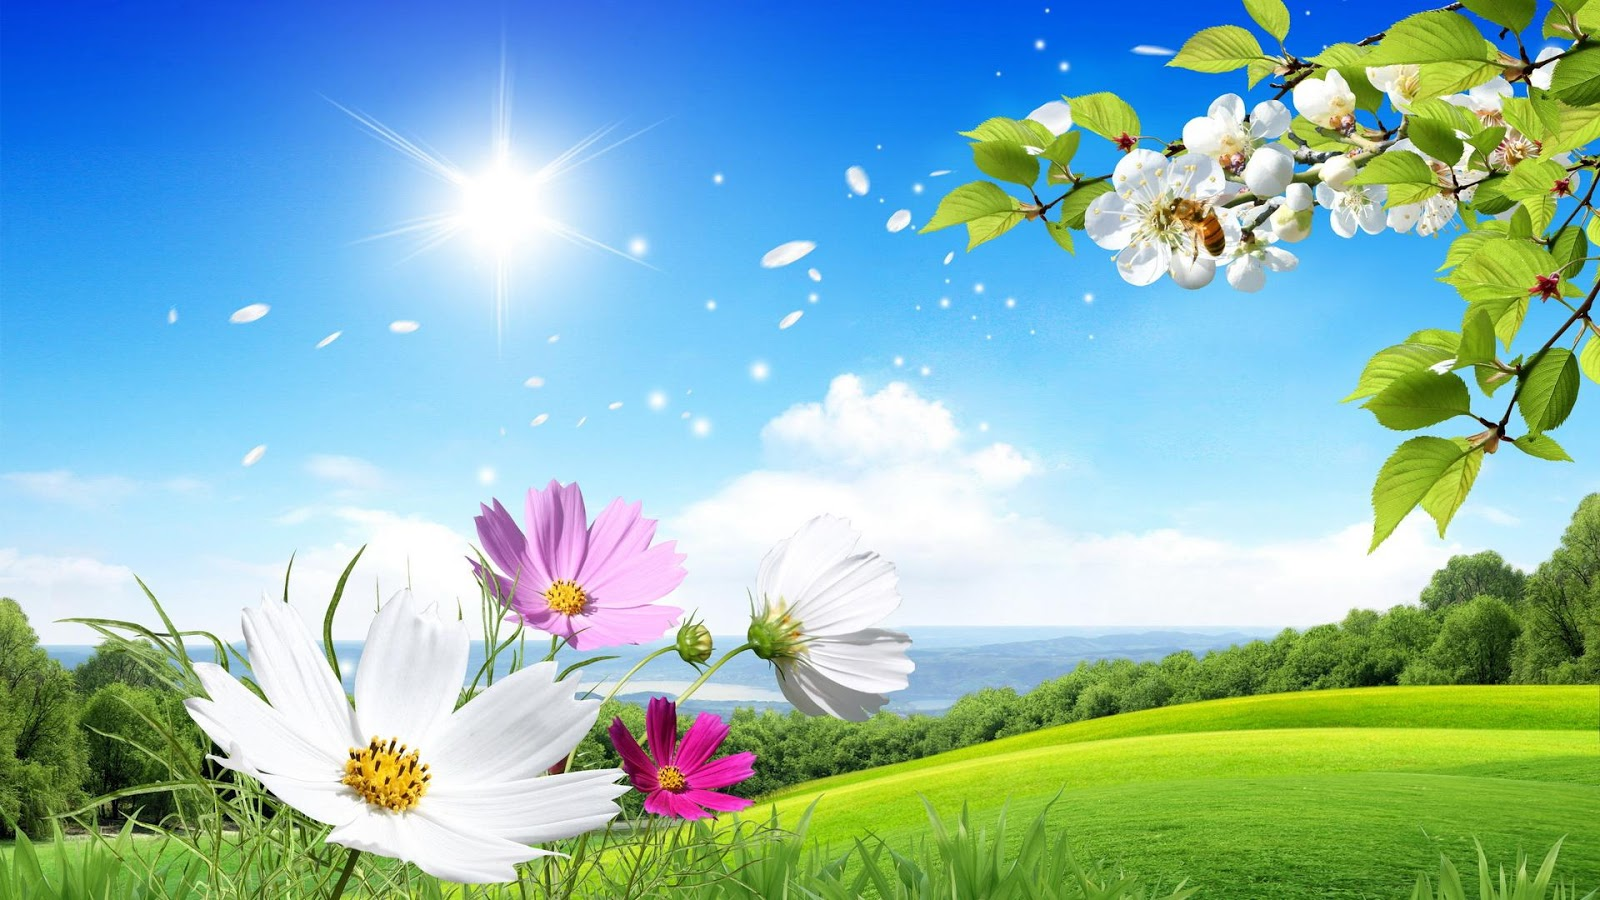 flowers for flower lovers : Flowers wallpapers natural sceneries 750